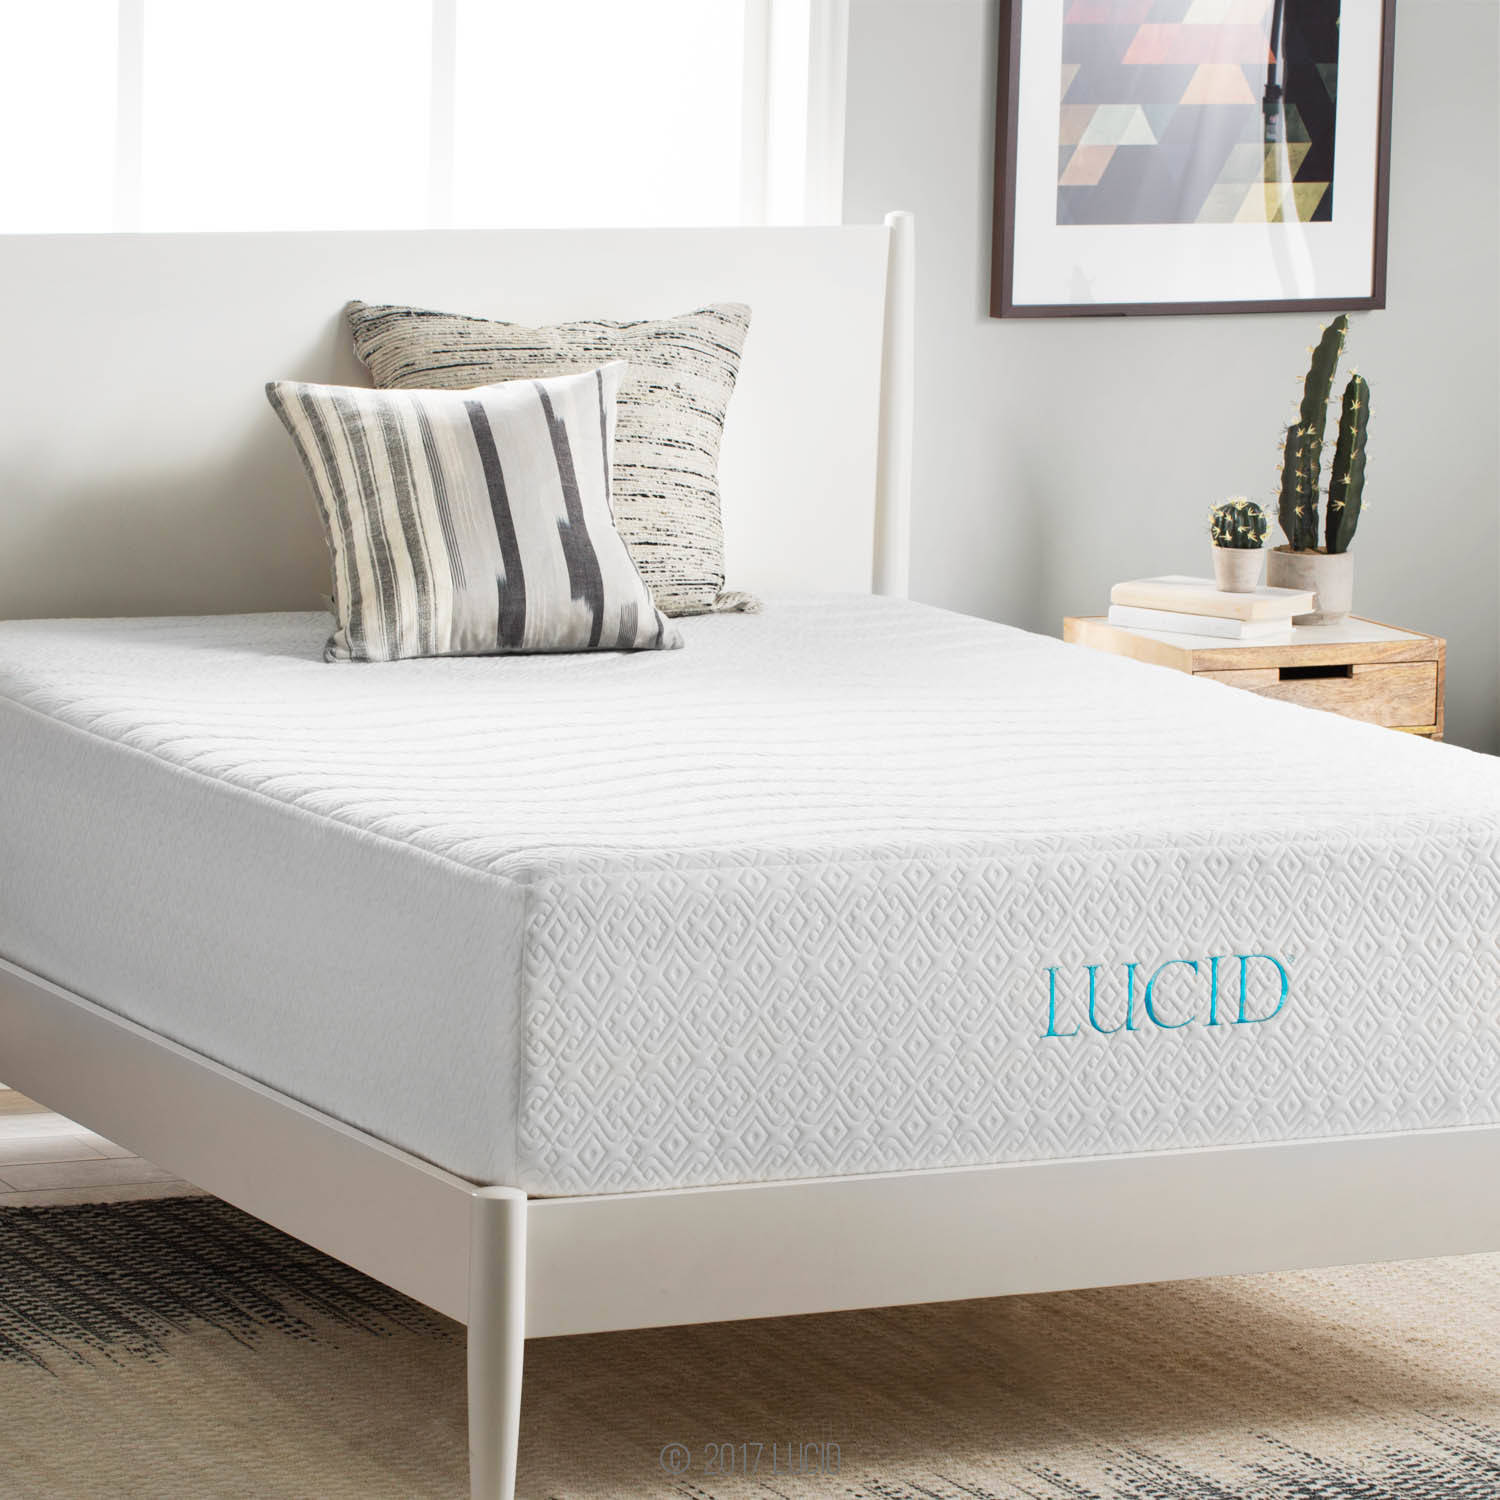 "Lucid 14"" Plush Memory Foam Mattress, Four-Layer, Multiple Sizes"